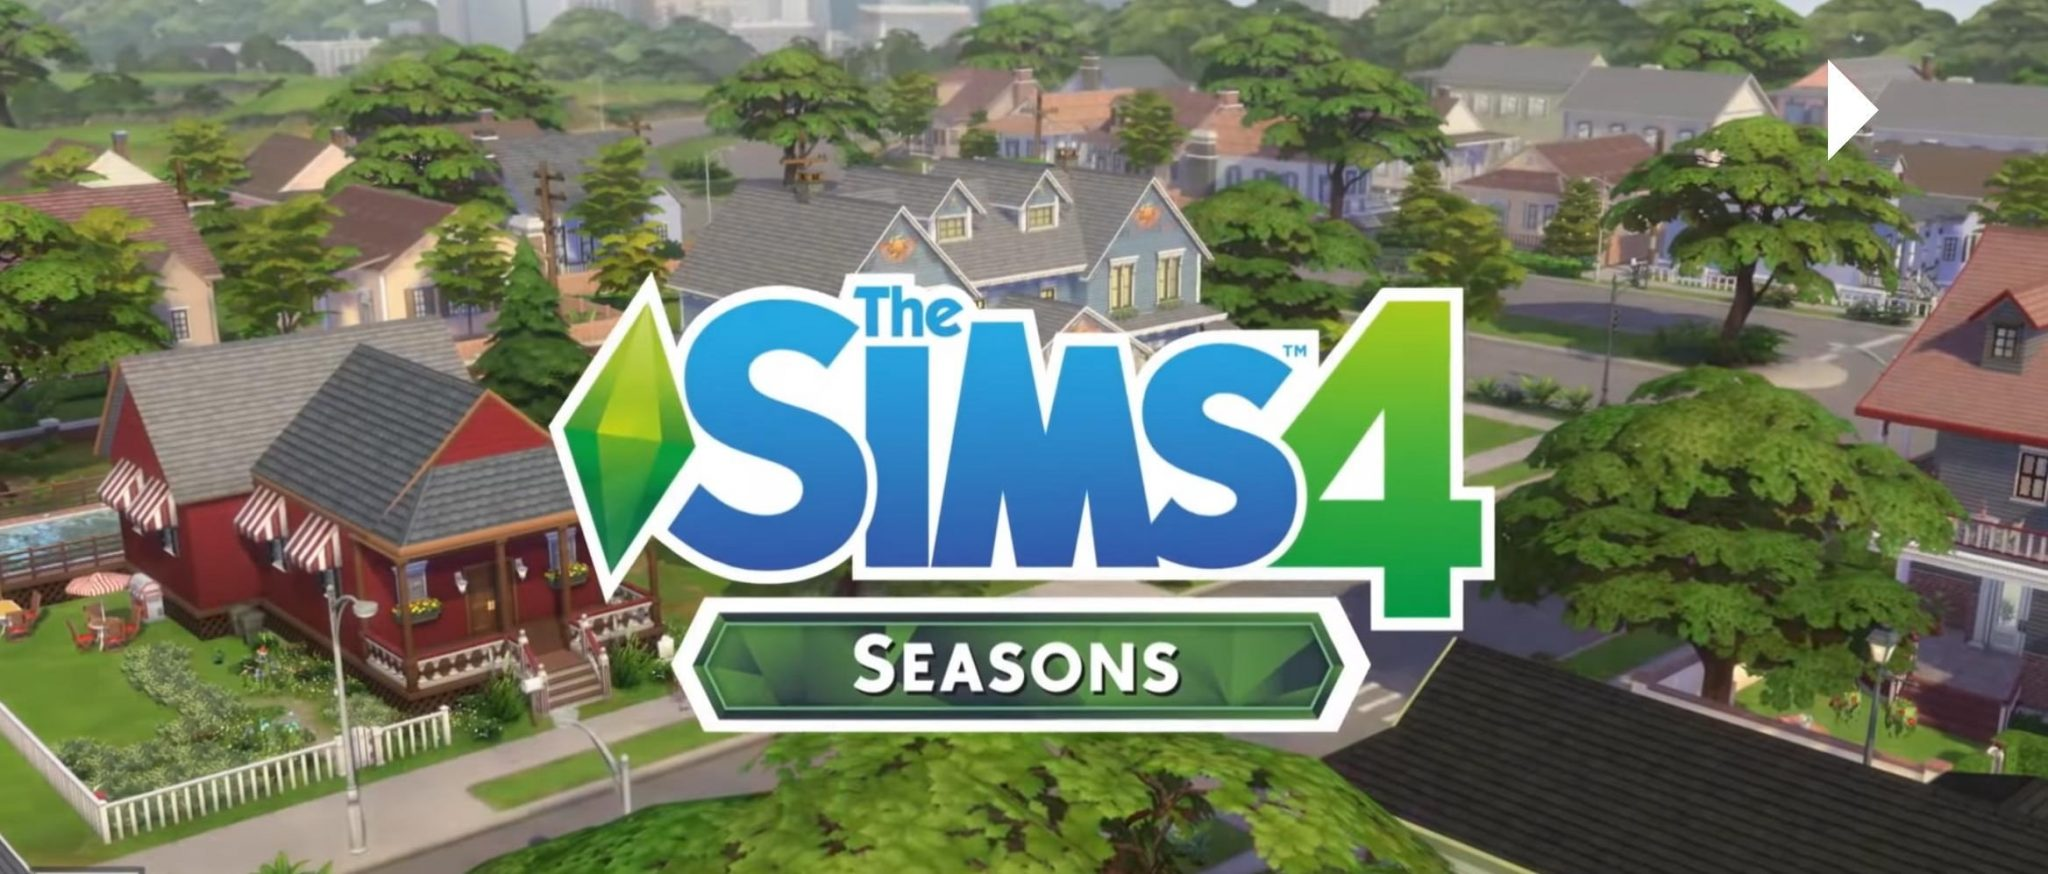 the sims 4 free full download apk